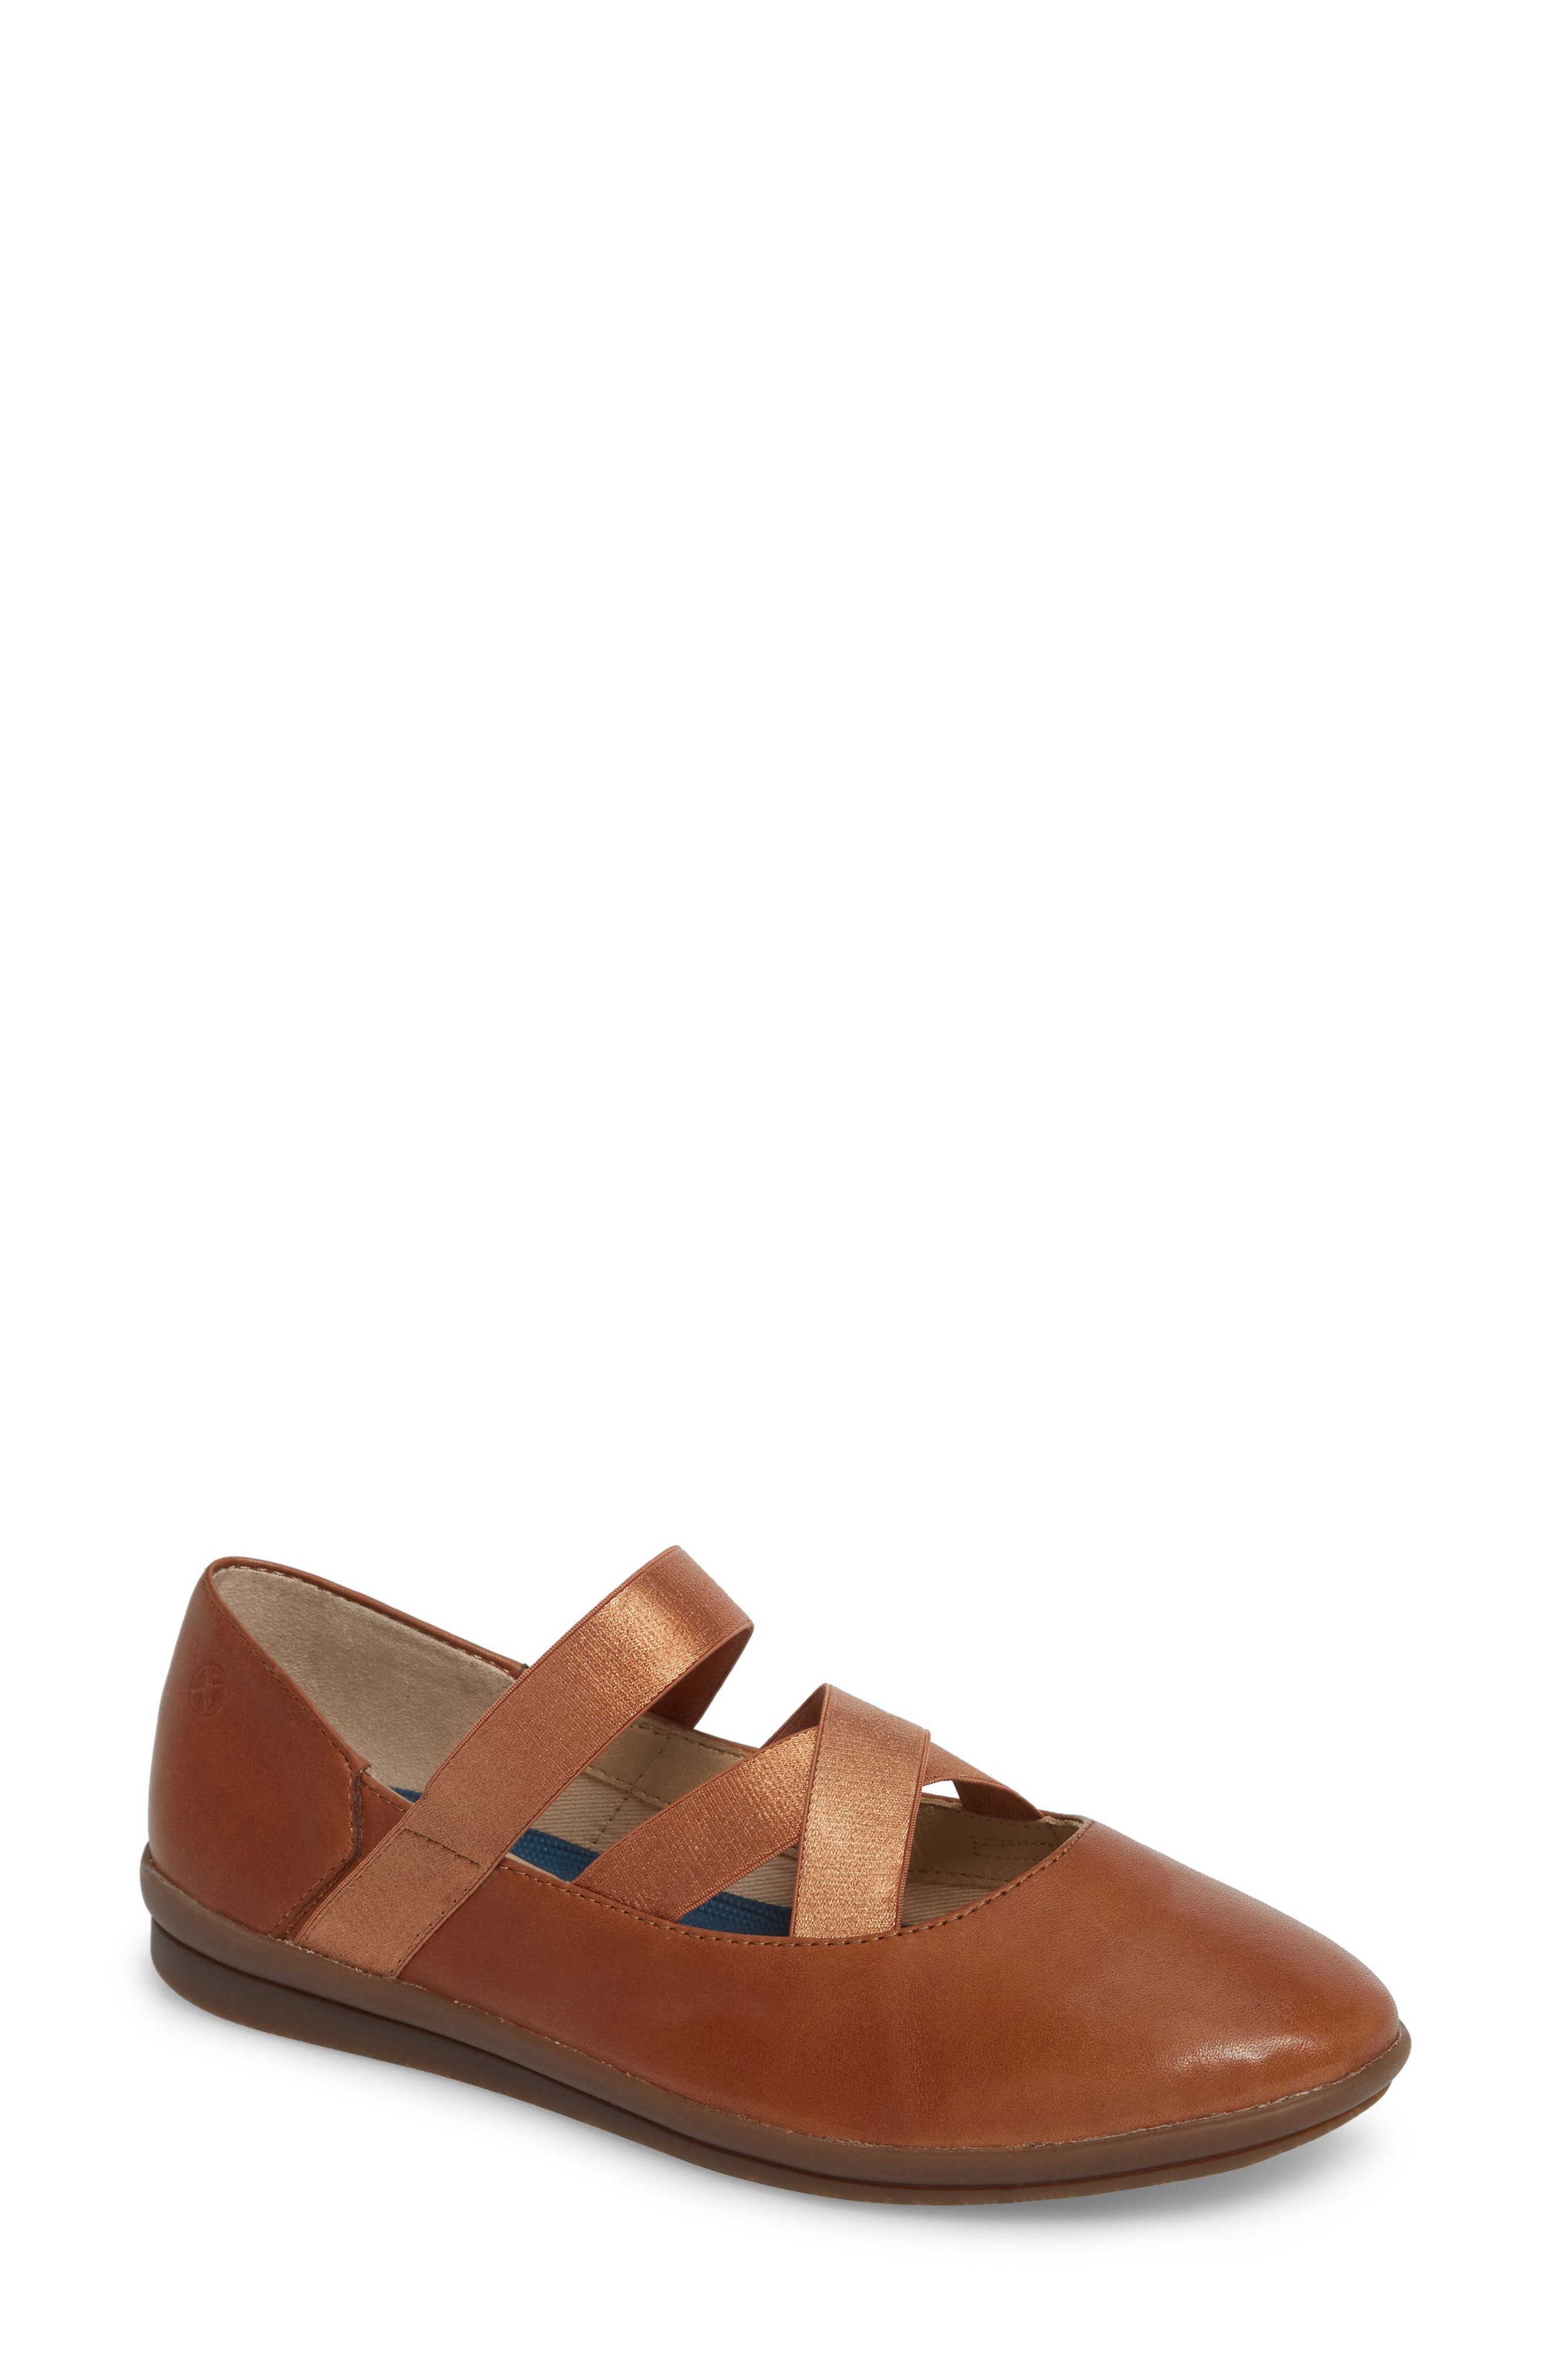 Meree Madrine Cross Strap Flat,                         Main,                         color,